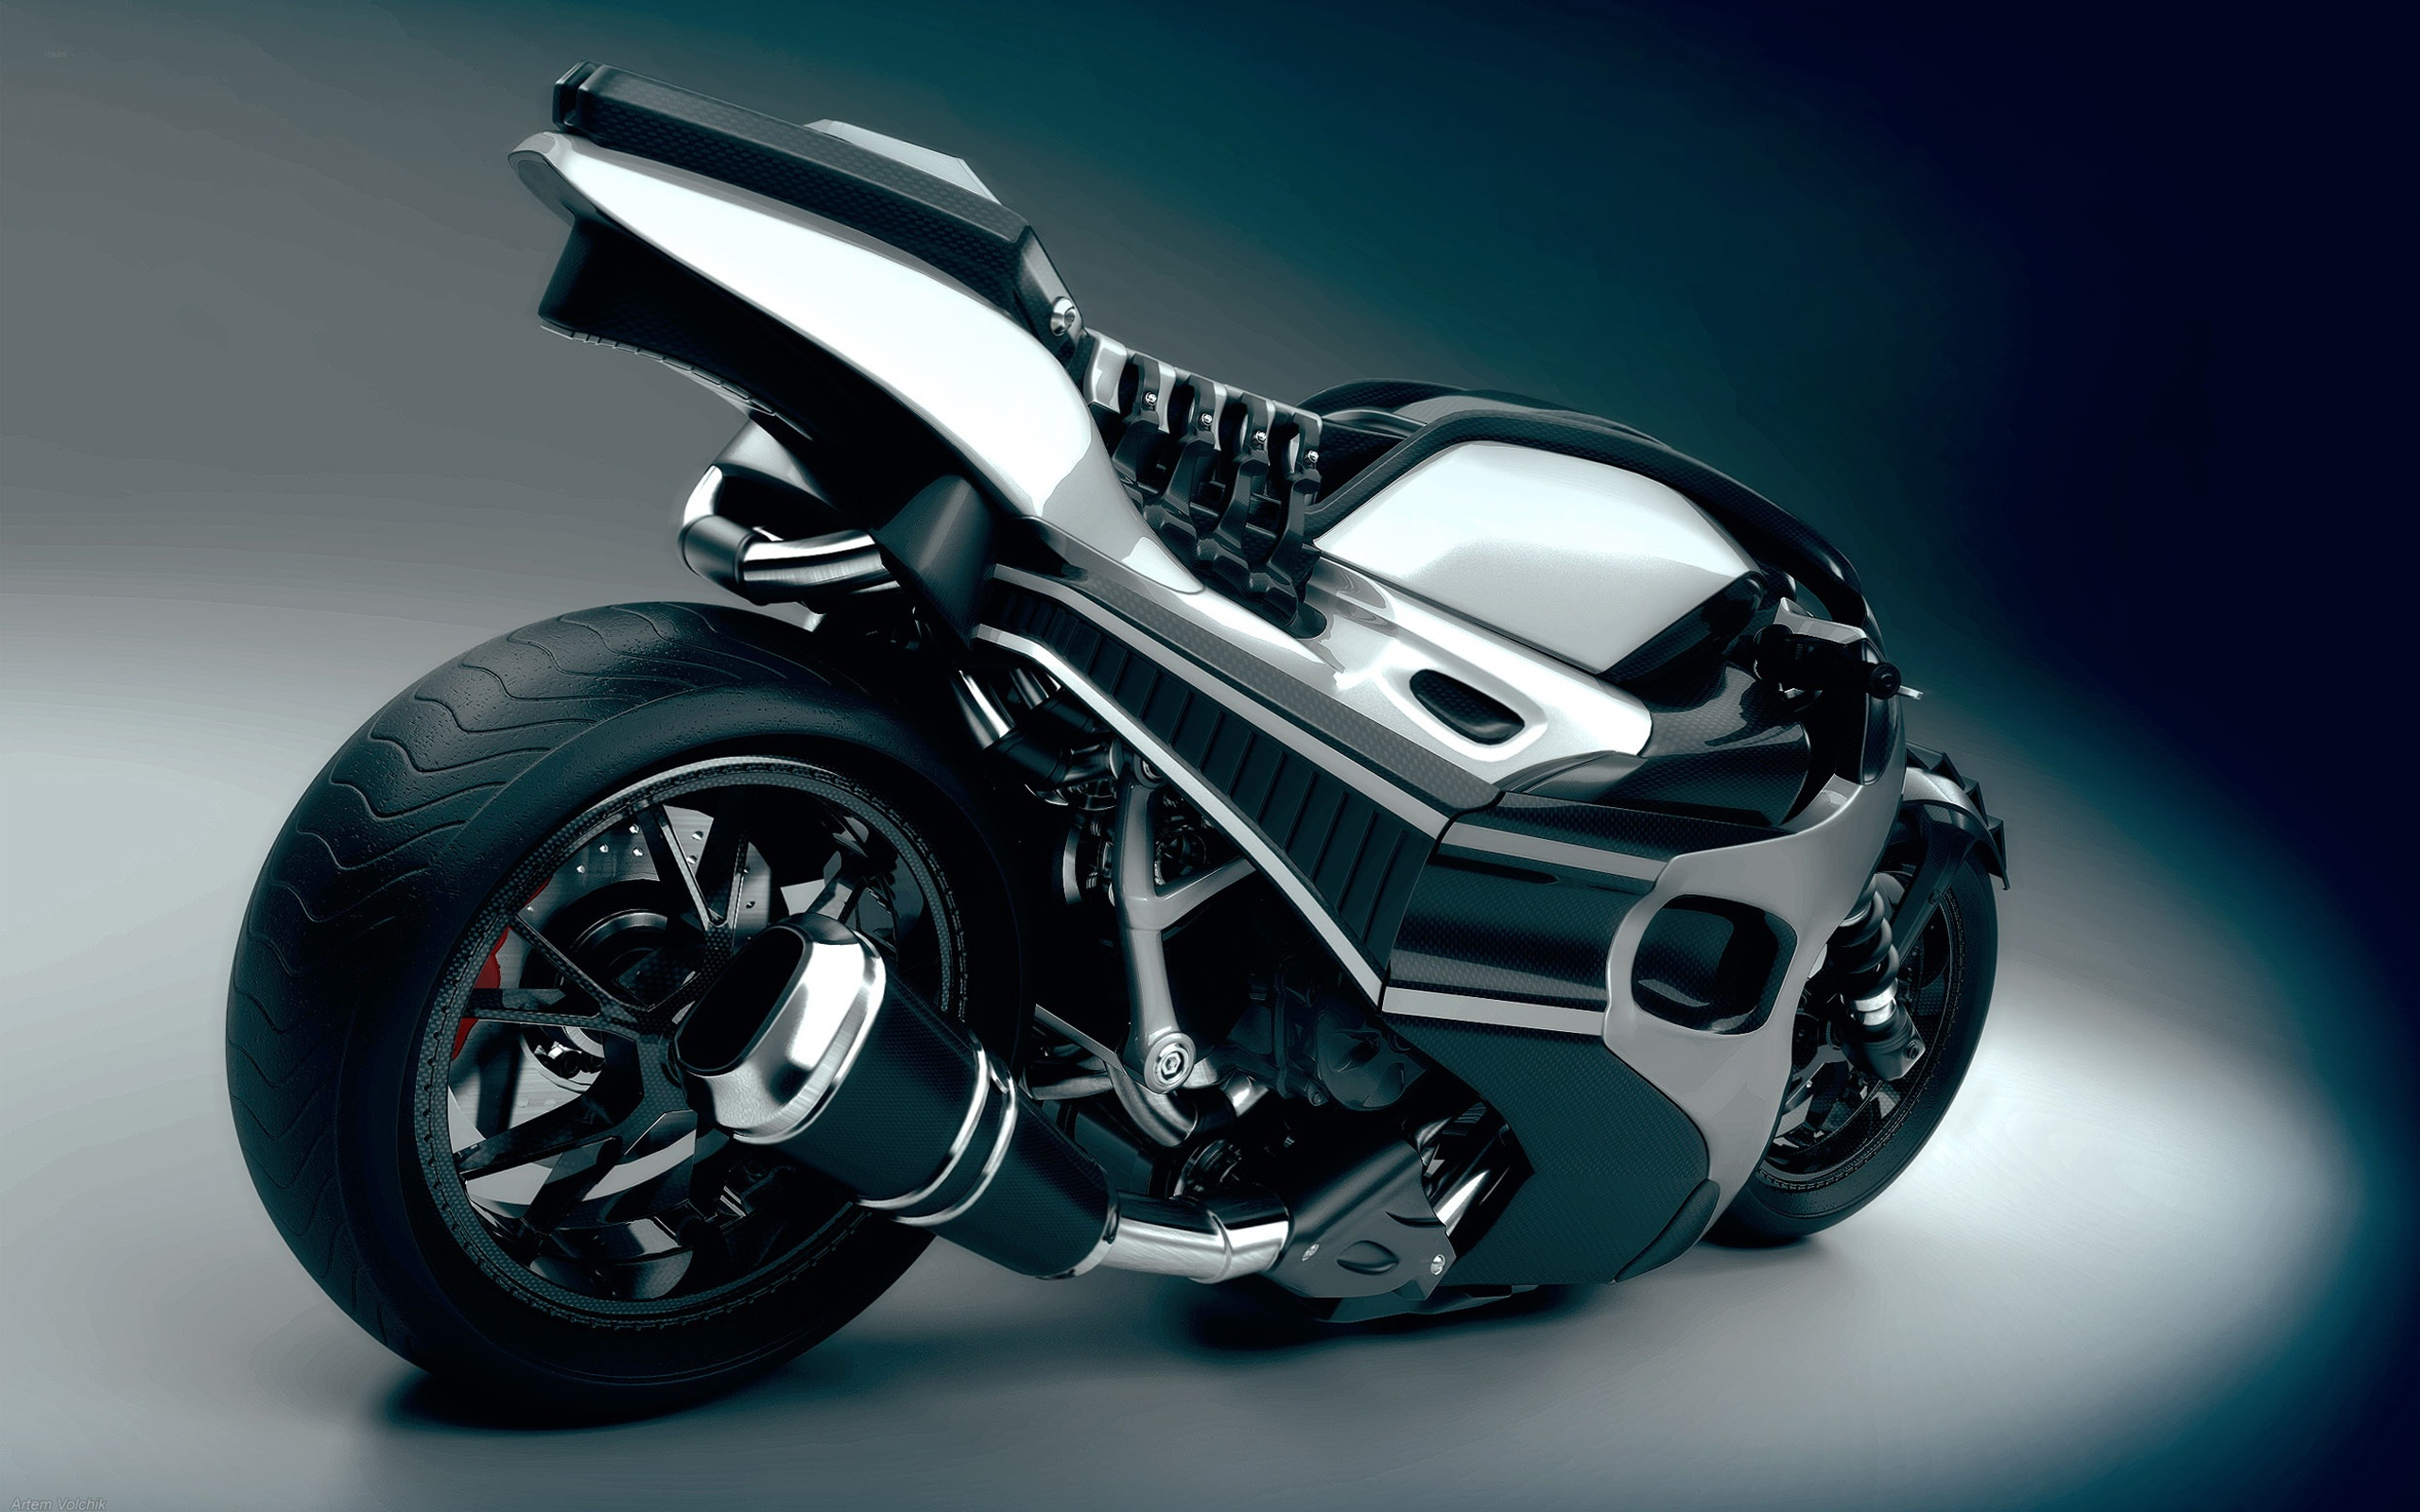 Wallpaper download cars and bikes free - 2560_1600